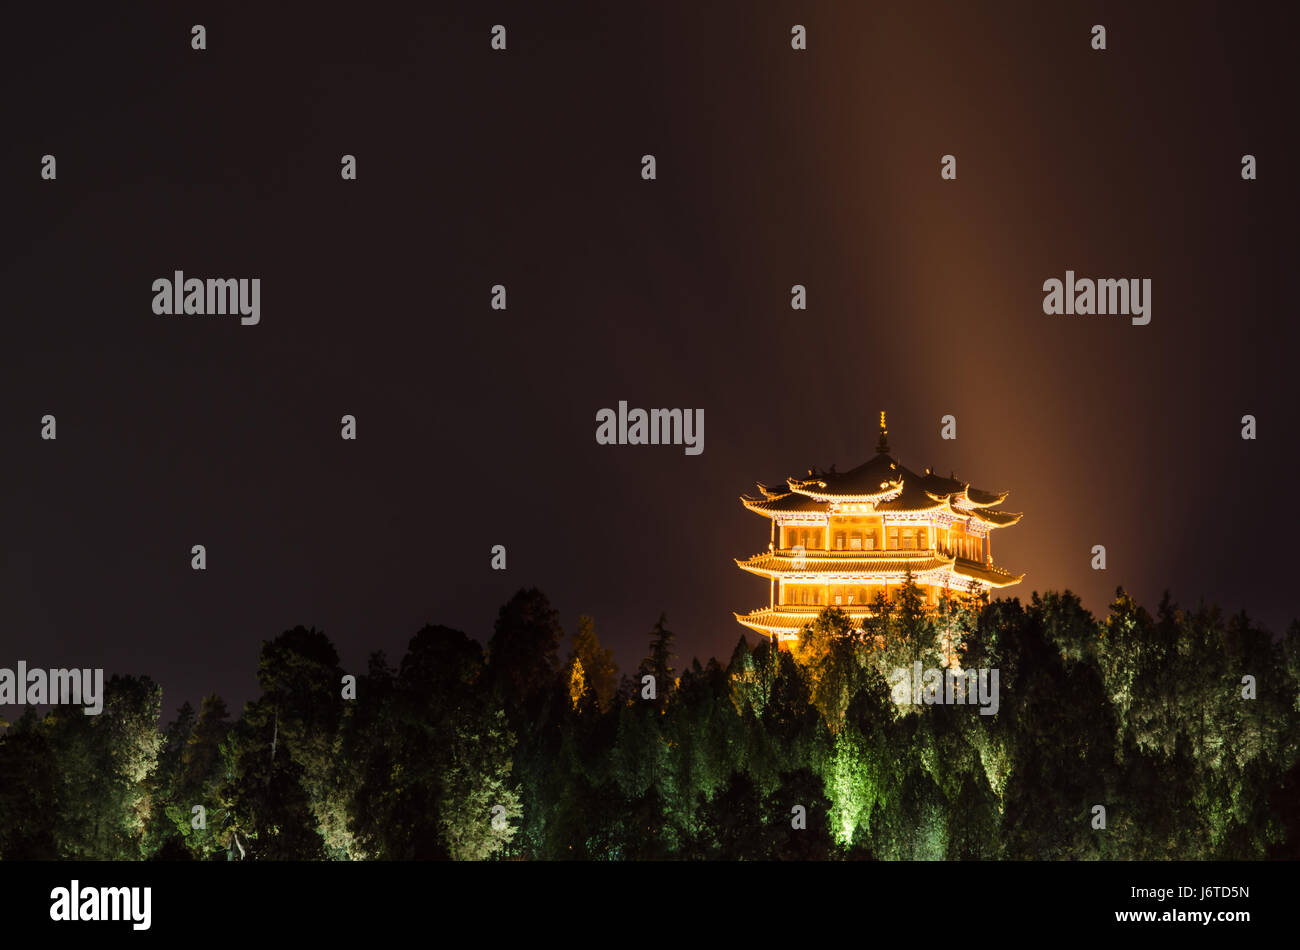 Lijiang,Yunnan - April 14,2017 : Night view of Wangulou in Old Town of Lijiang, Yunnan Province, China. - Stock Image